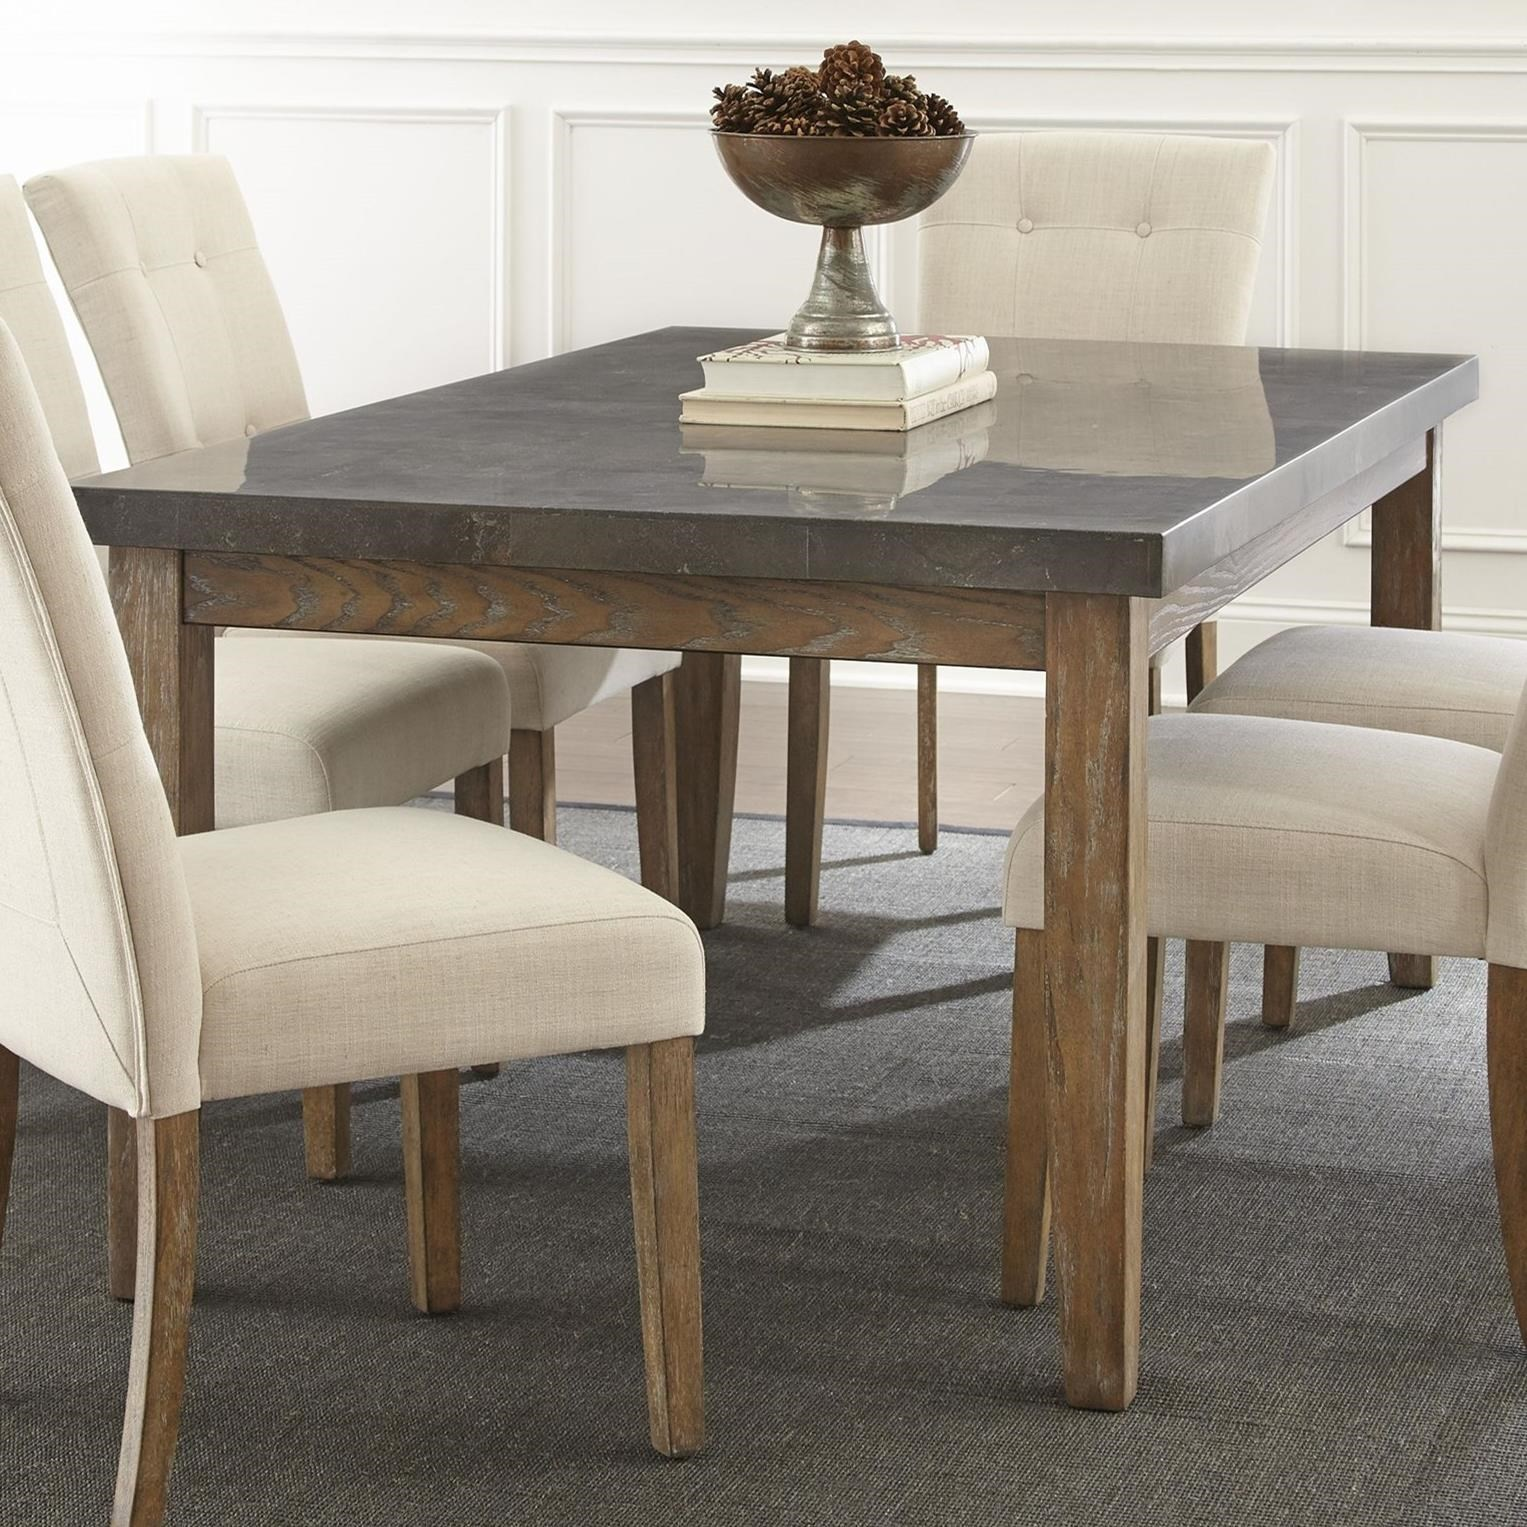 Blue Kitchen Table And Chairs: Steve Silver Debby Transitional Rectangular Dining Table